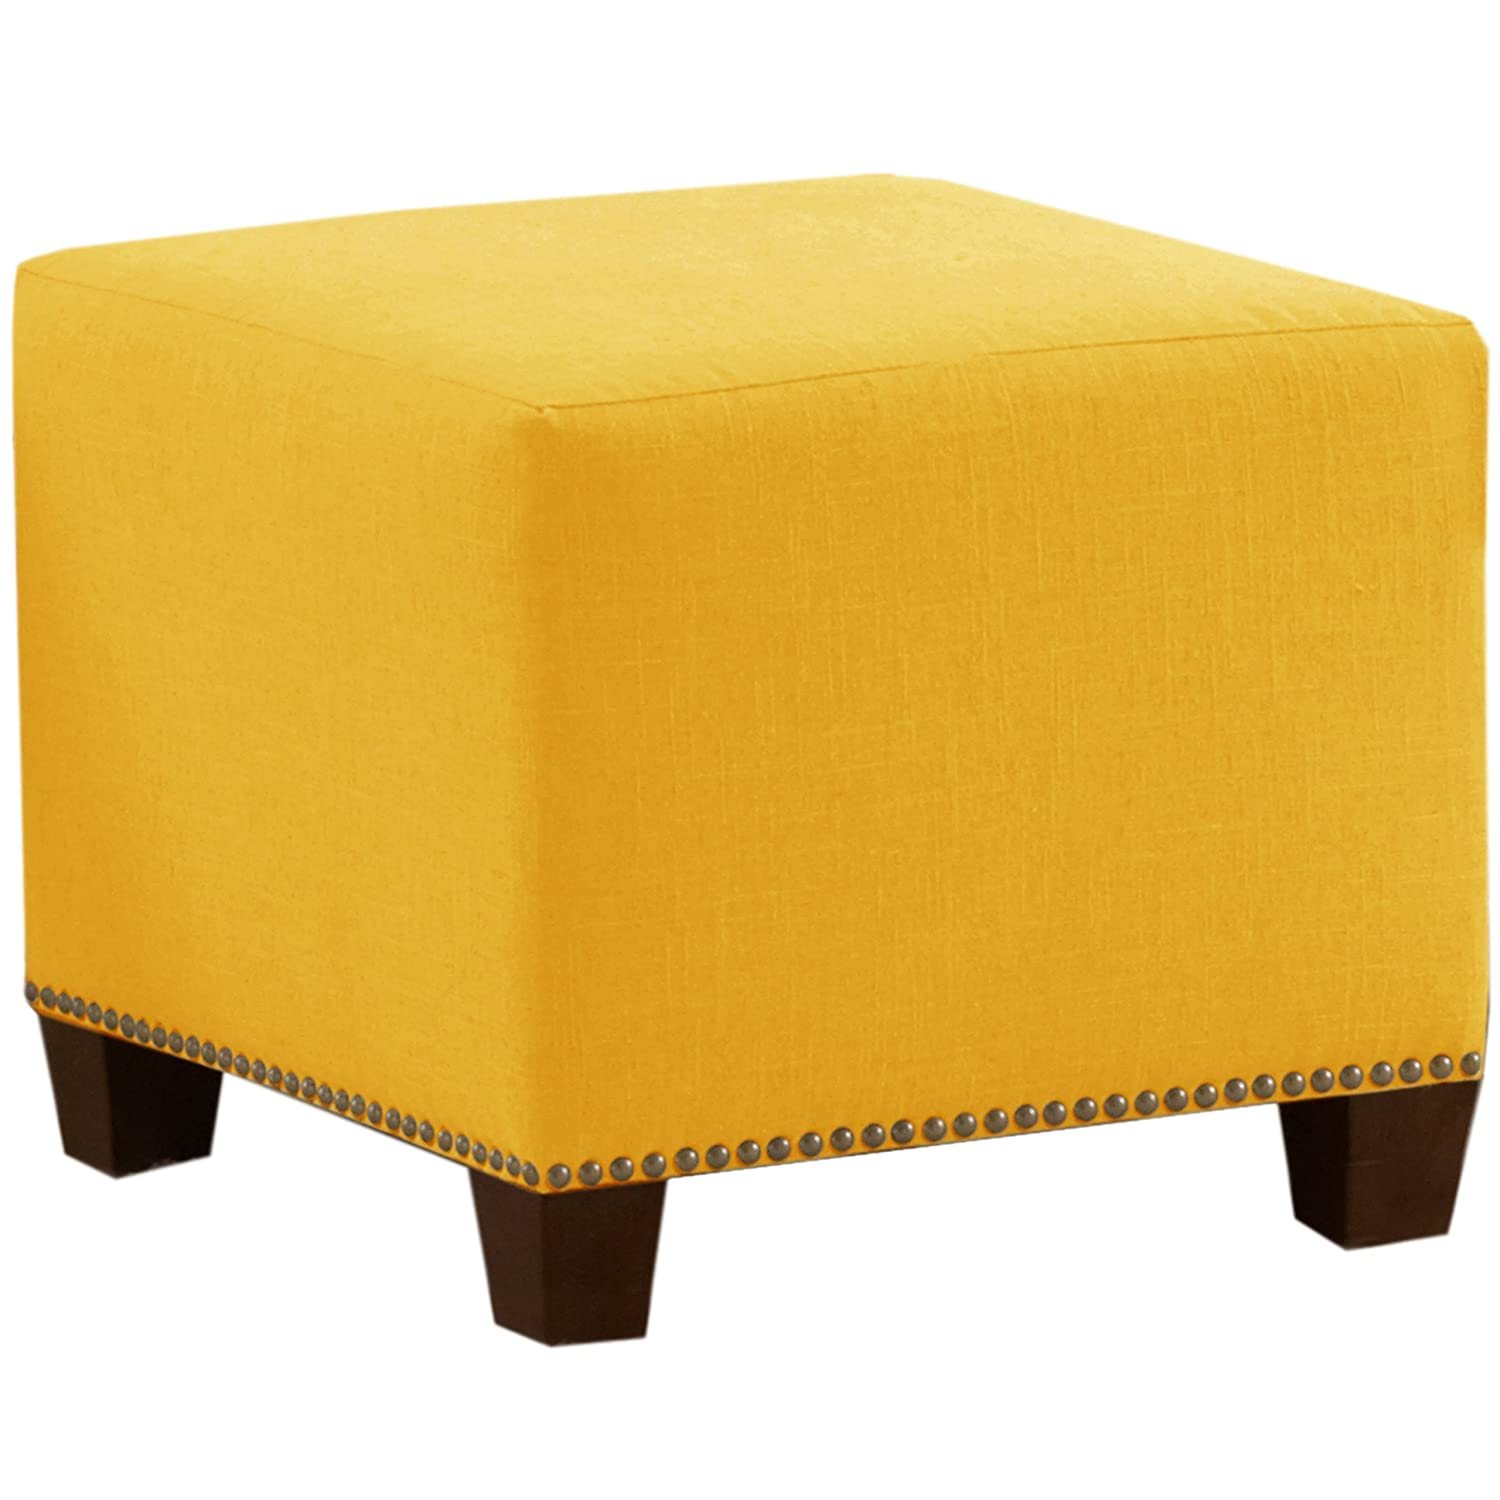 Superb Amazon.com: Skyline Furniture Square Nail Button Ottoman, Linen French  Yellow: Kitchen U0026 Dining